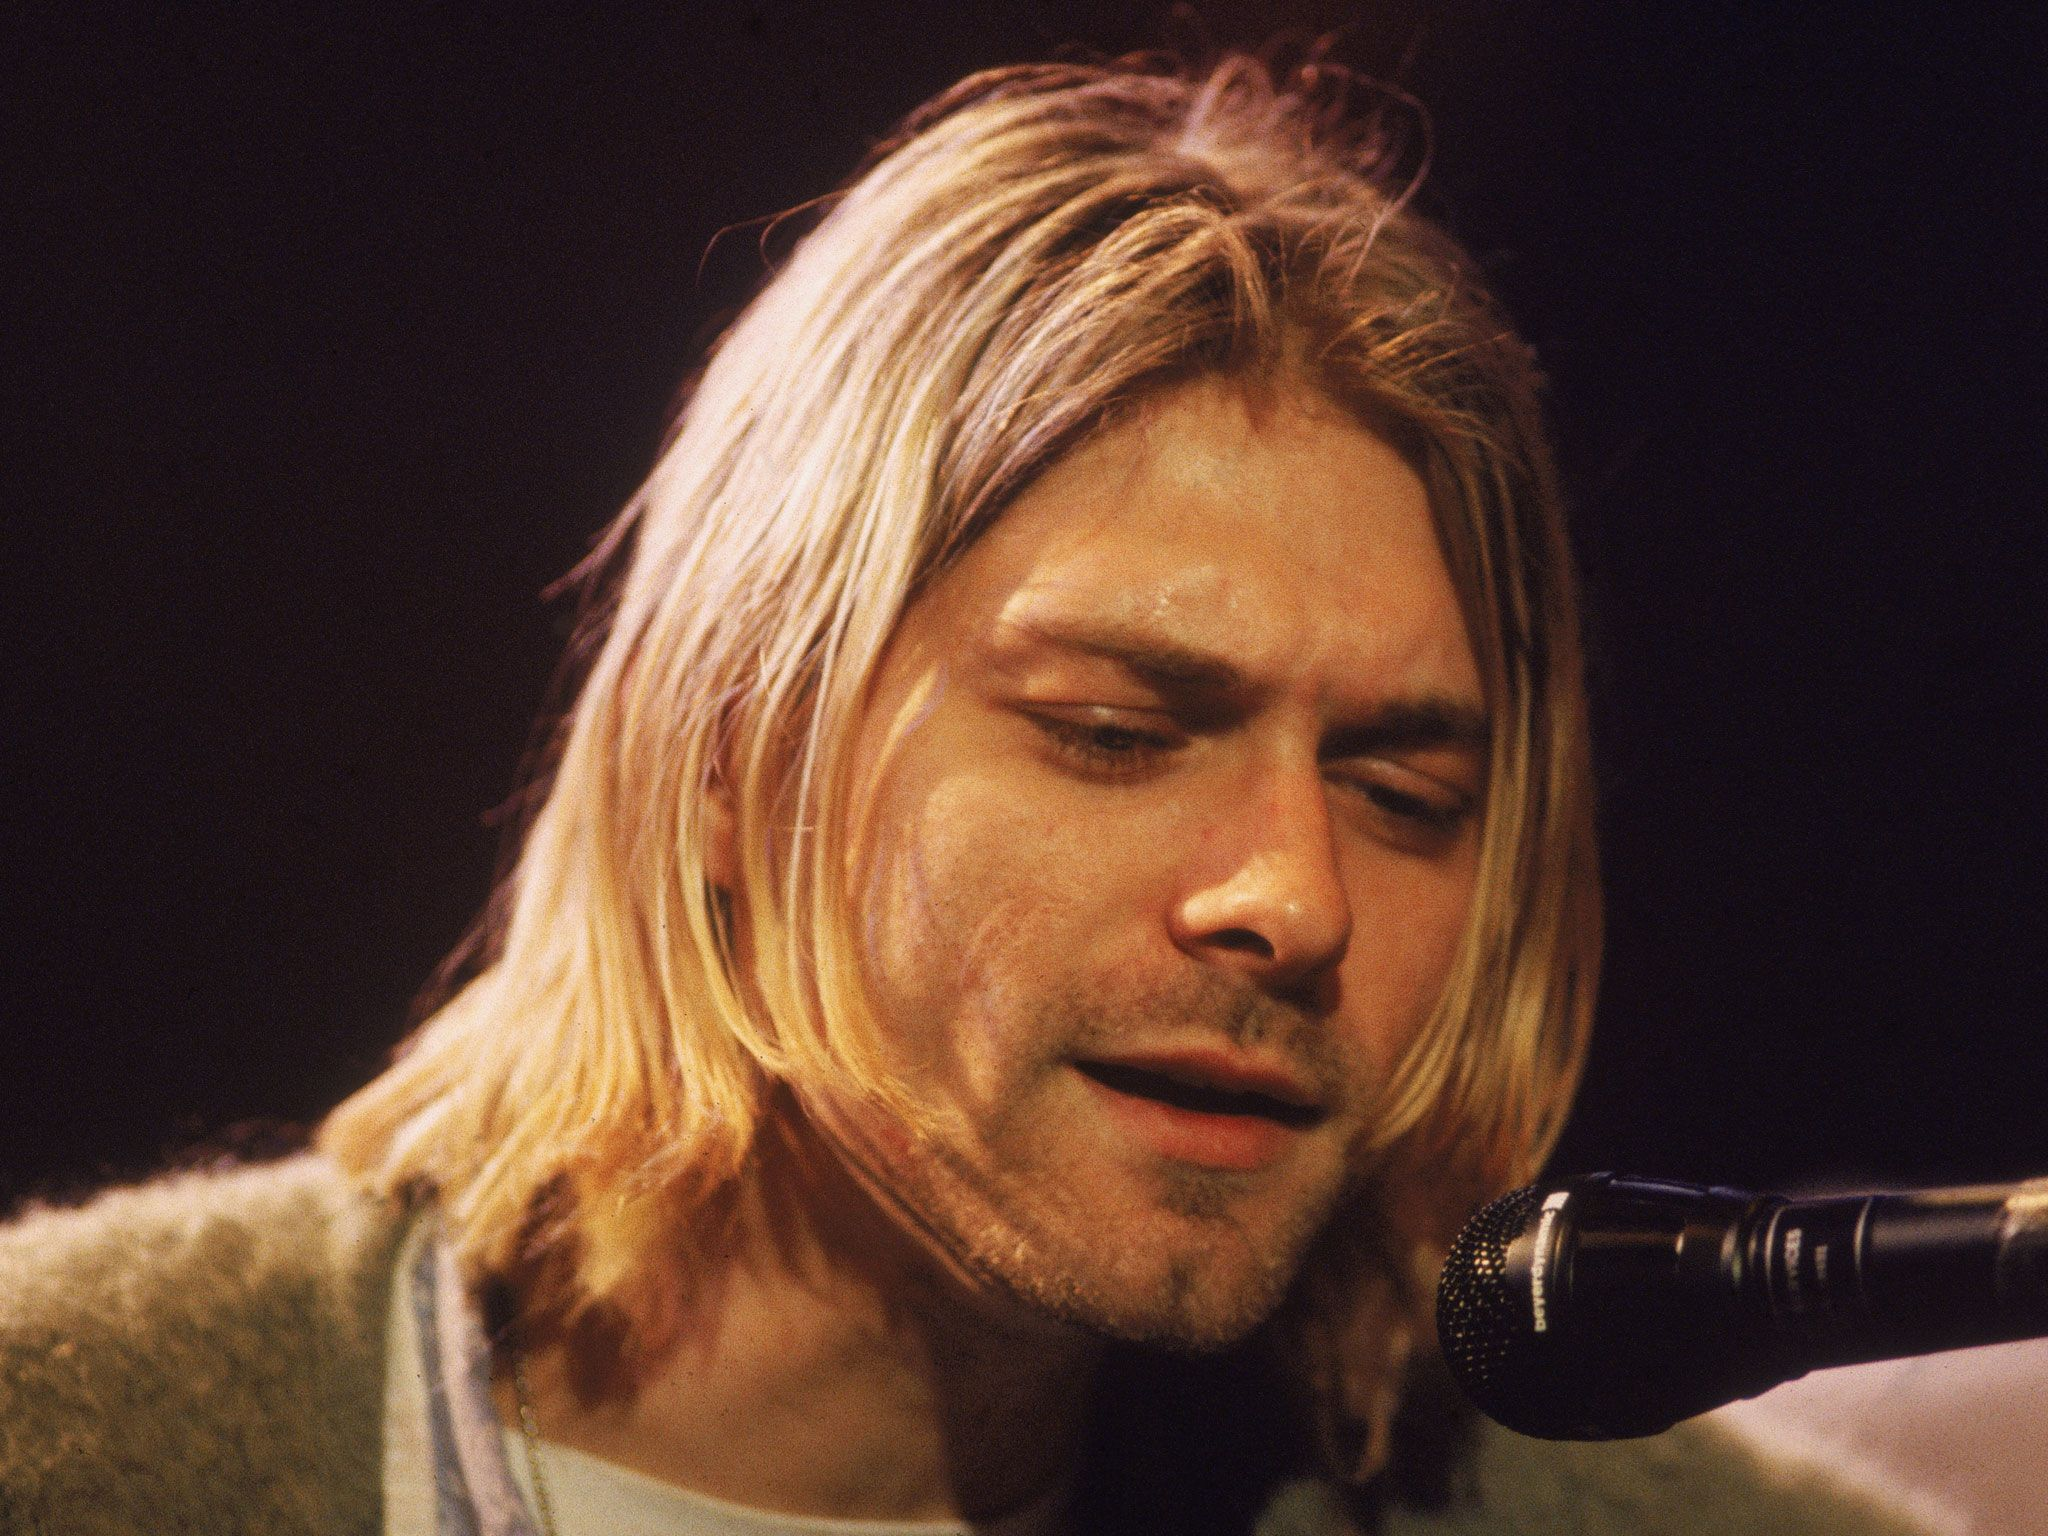 Kurt Cobain Wallpaper Free Download